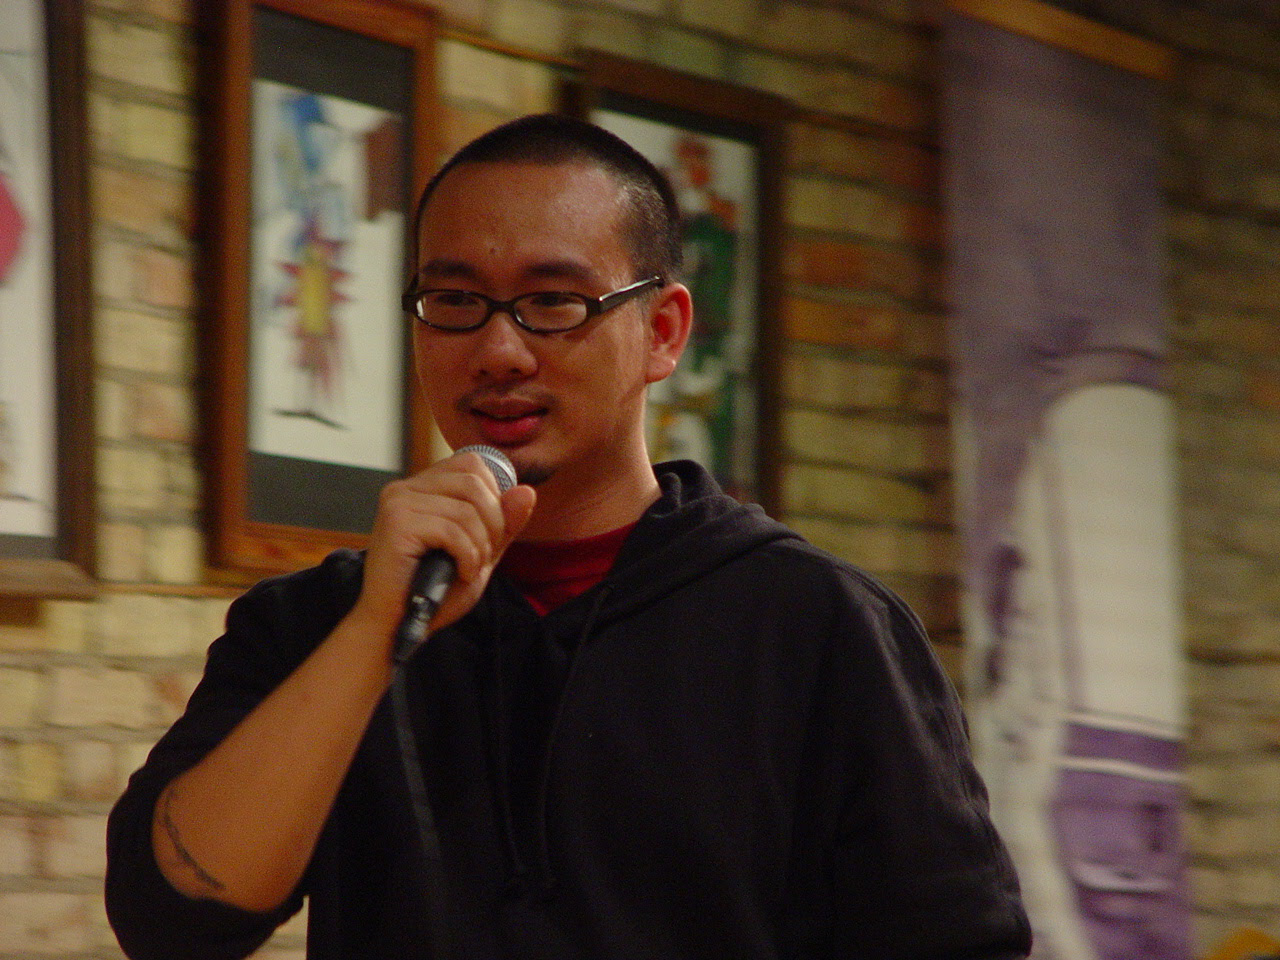 Bao Phi in 2005 reading at the debut of Real Karaoke People by Ed Bok Lee